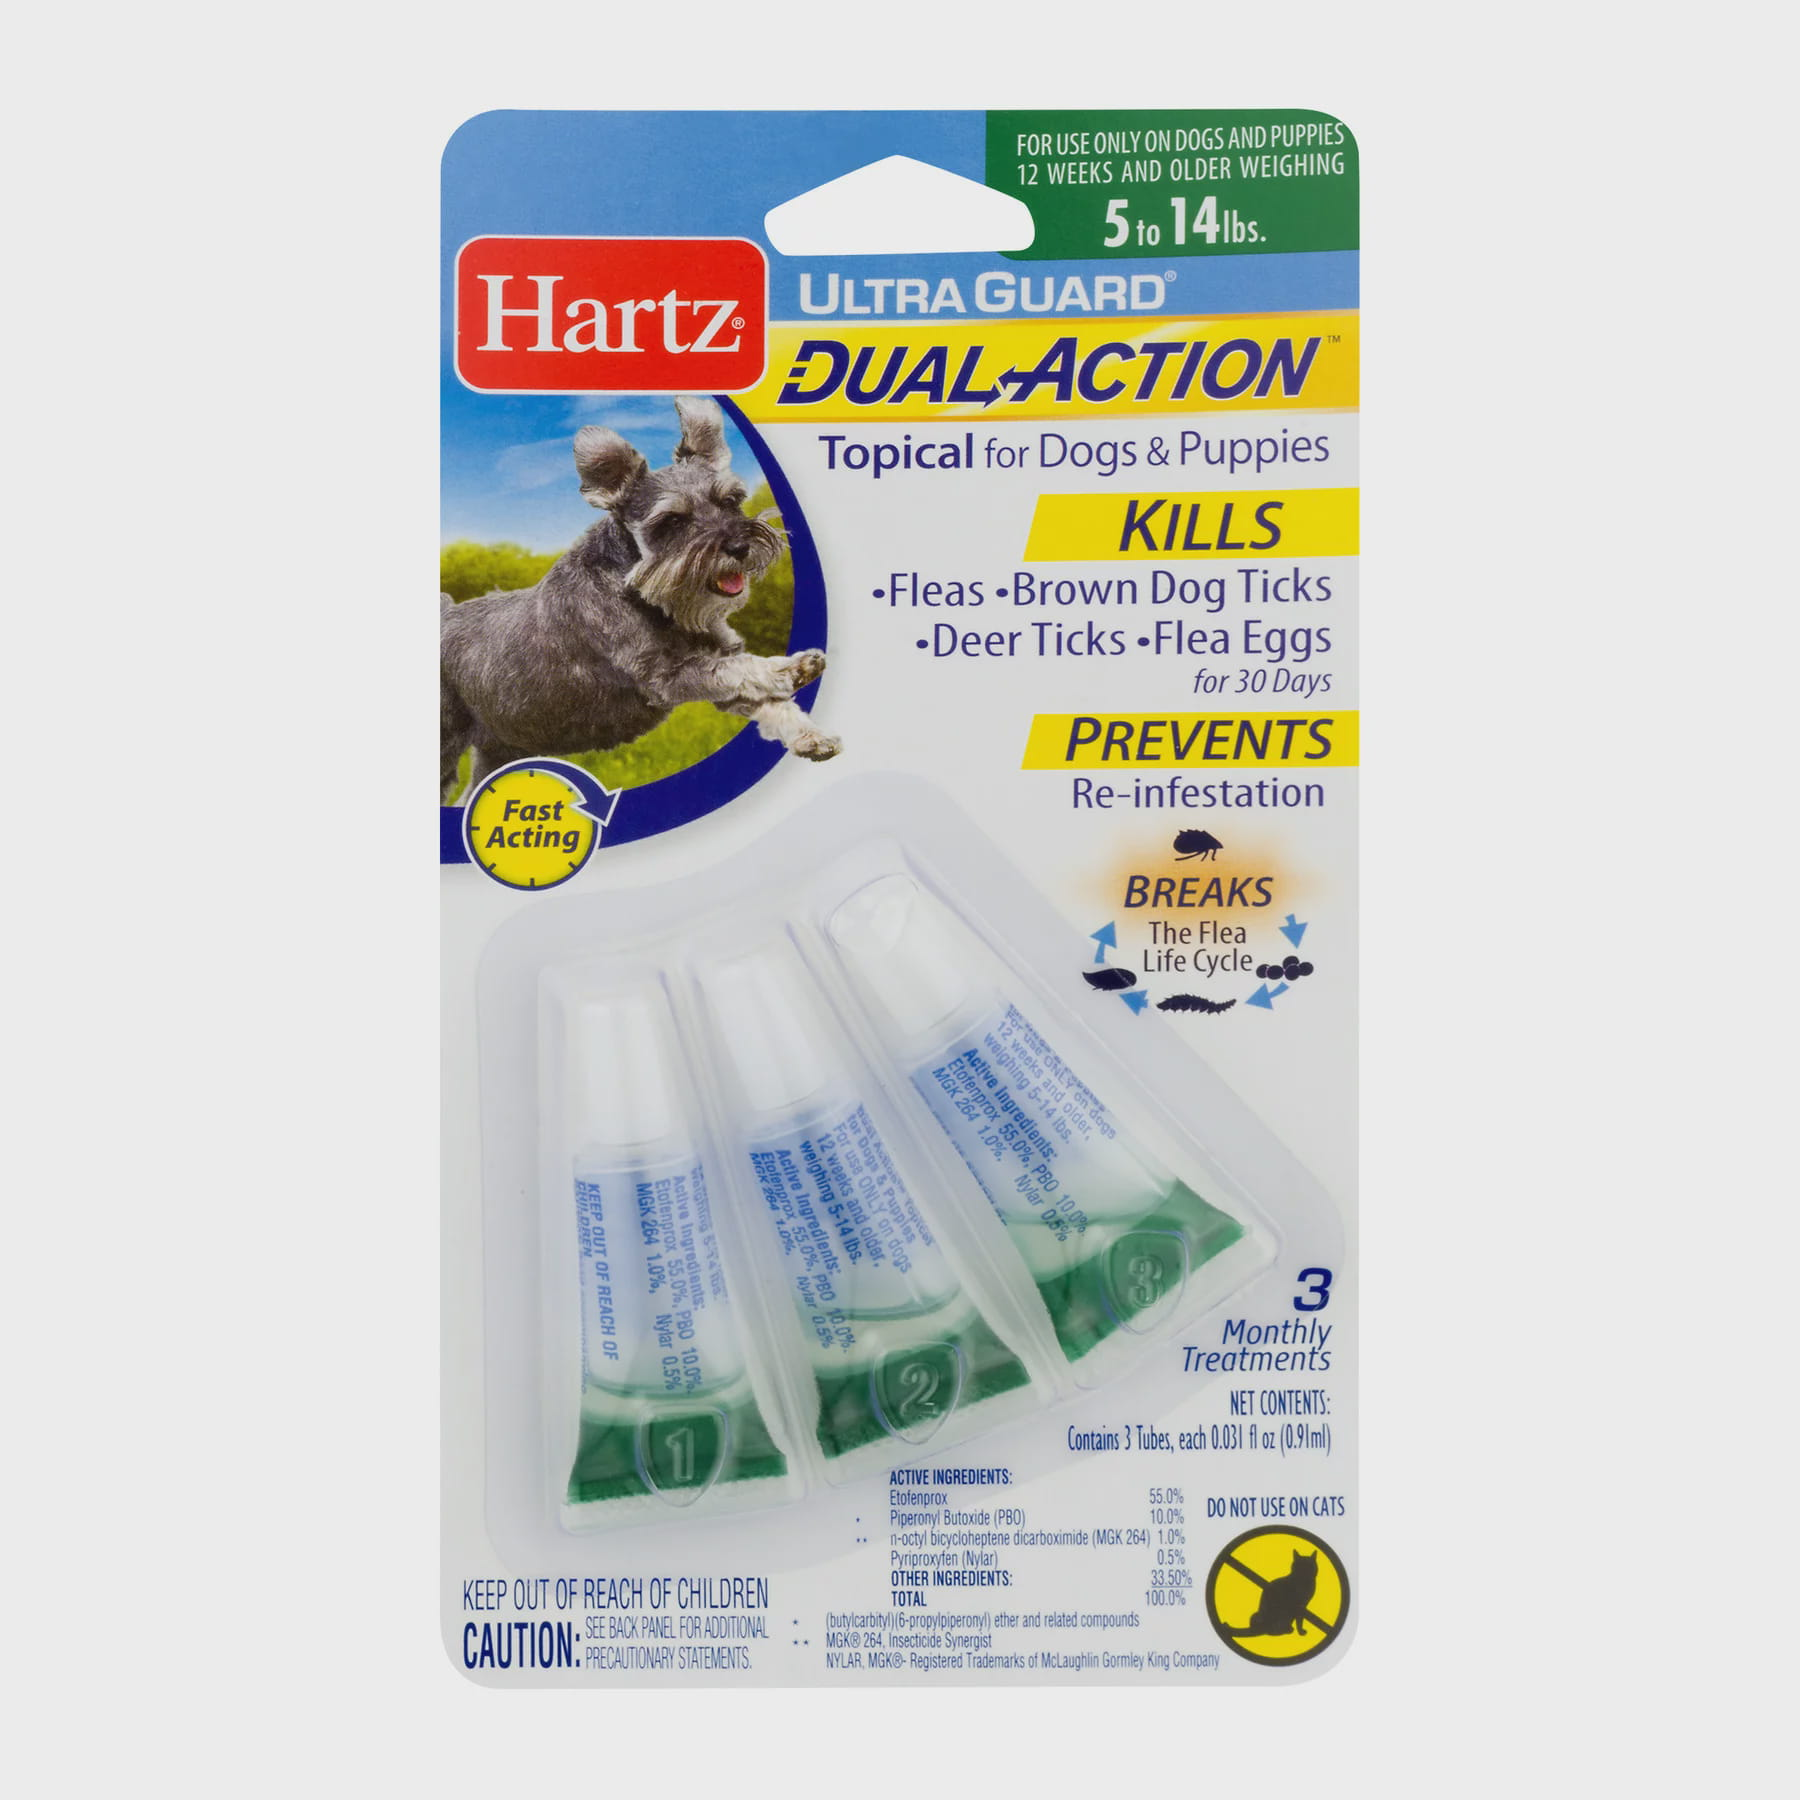 Hartz UltraGuard Dual Action Flea & Tick Topical Treatment for Dogs